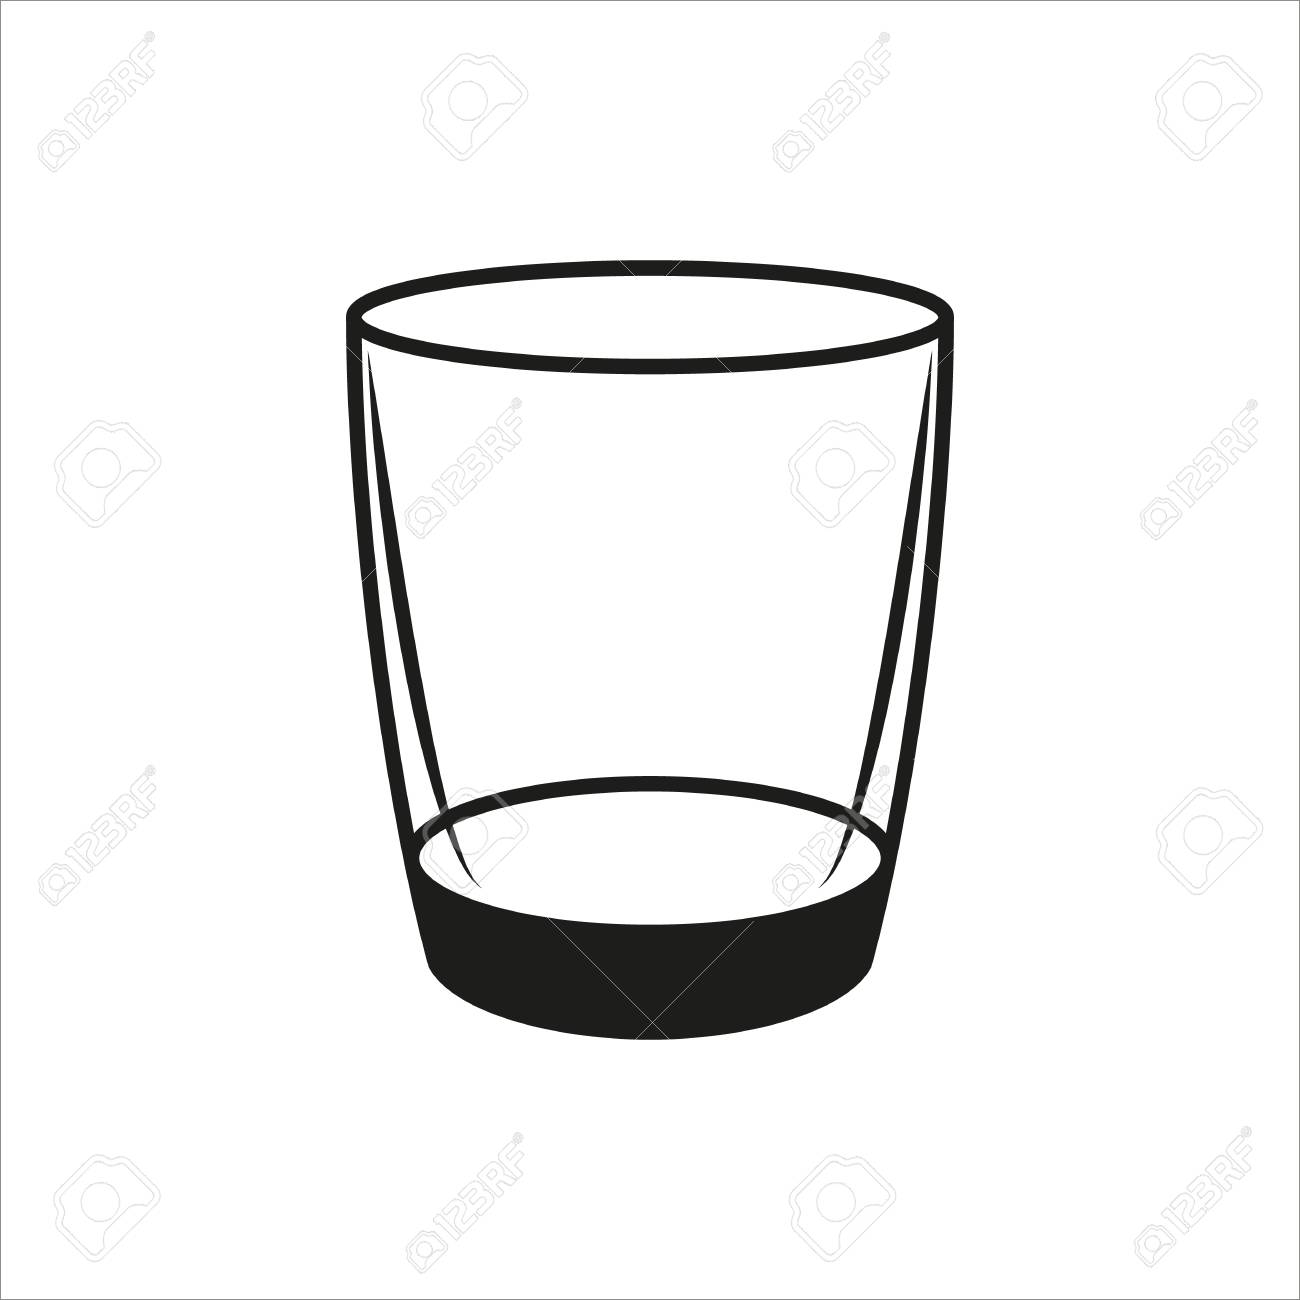 empty glass icon created for mobile, web, decor, print products